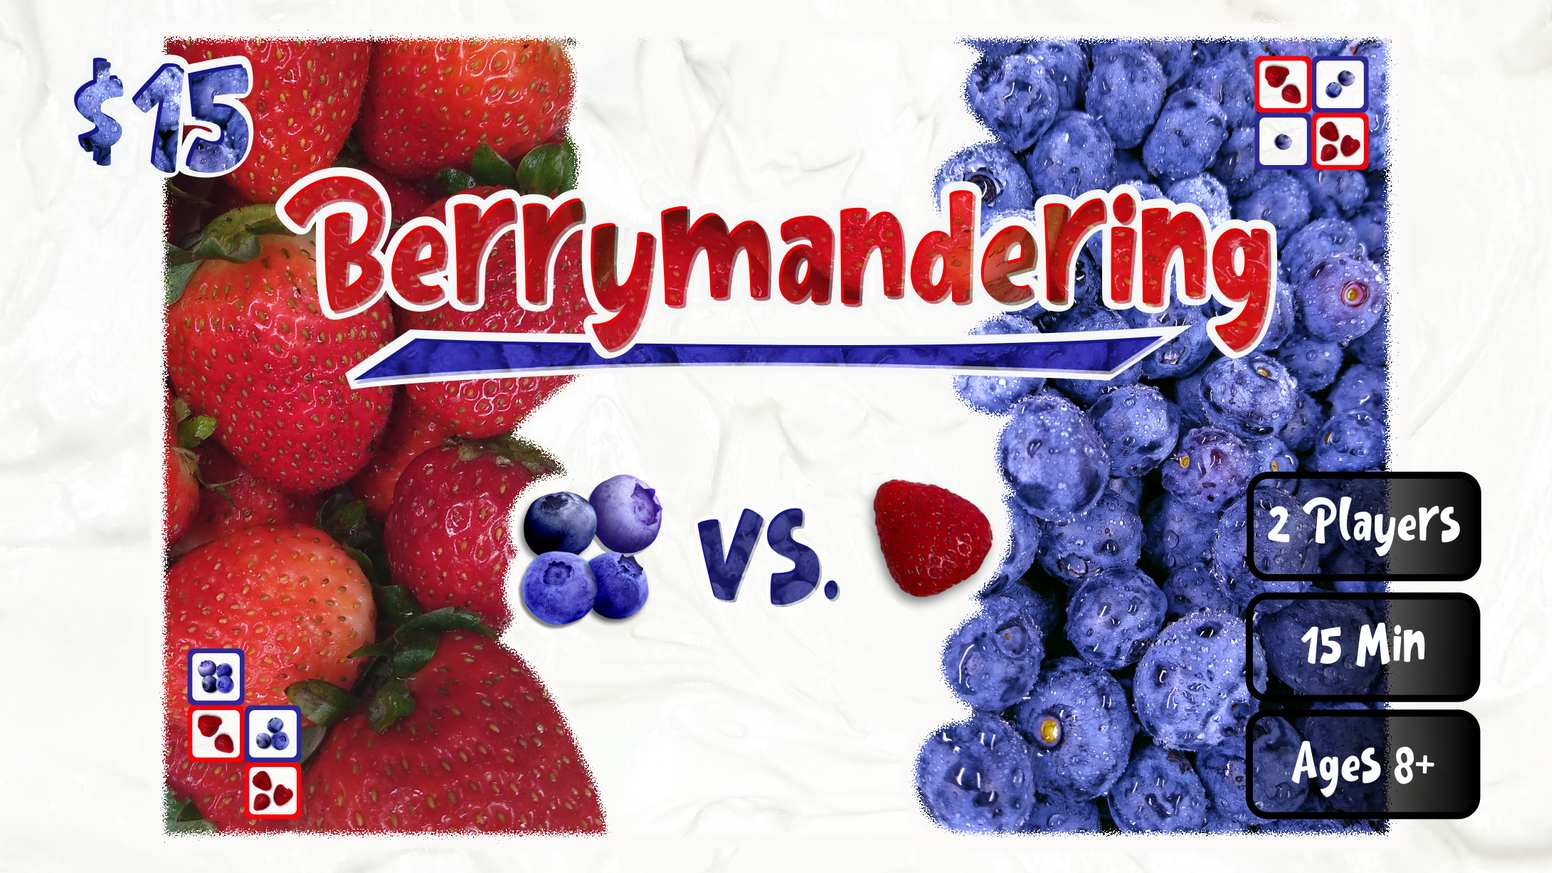 Gerrymander berries on a cake in this 2 player strategy game